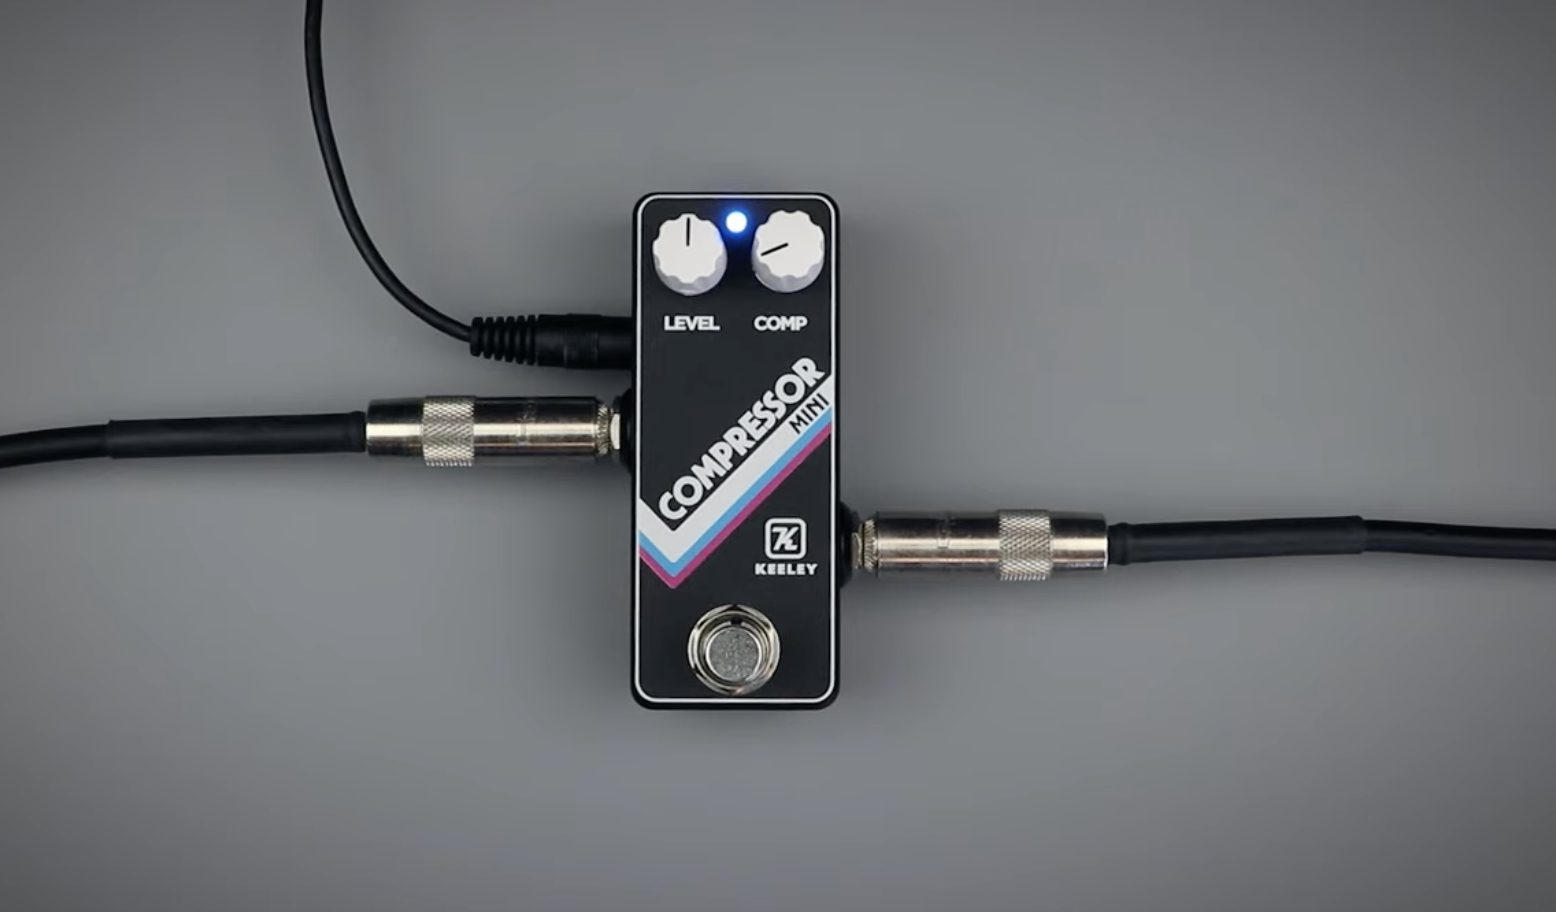 Keeley Compressor Mini is super simple to operate